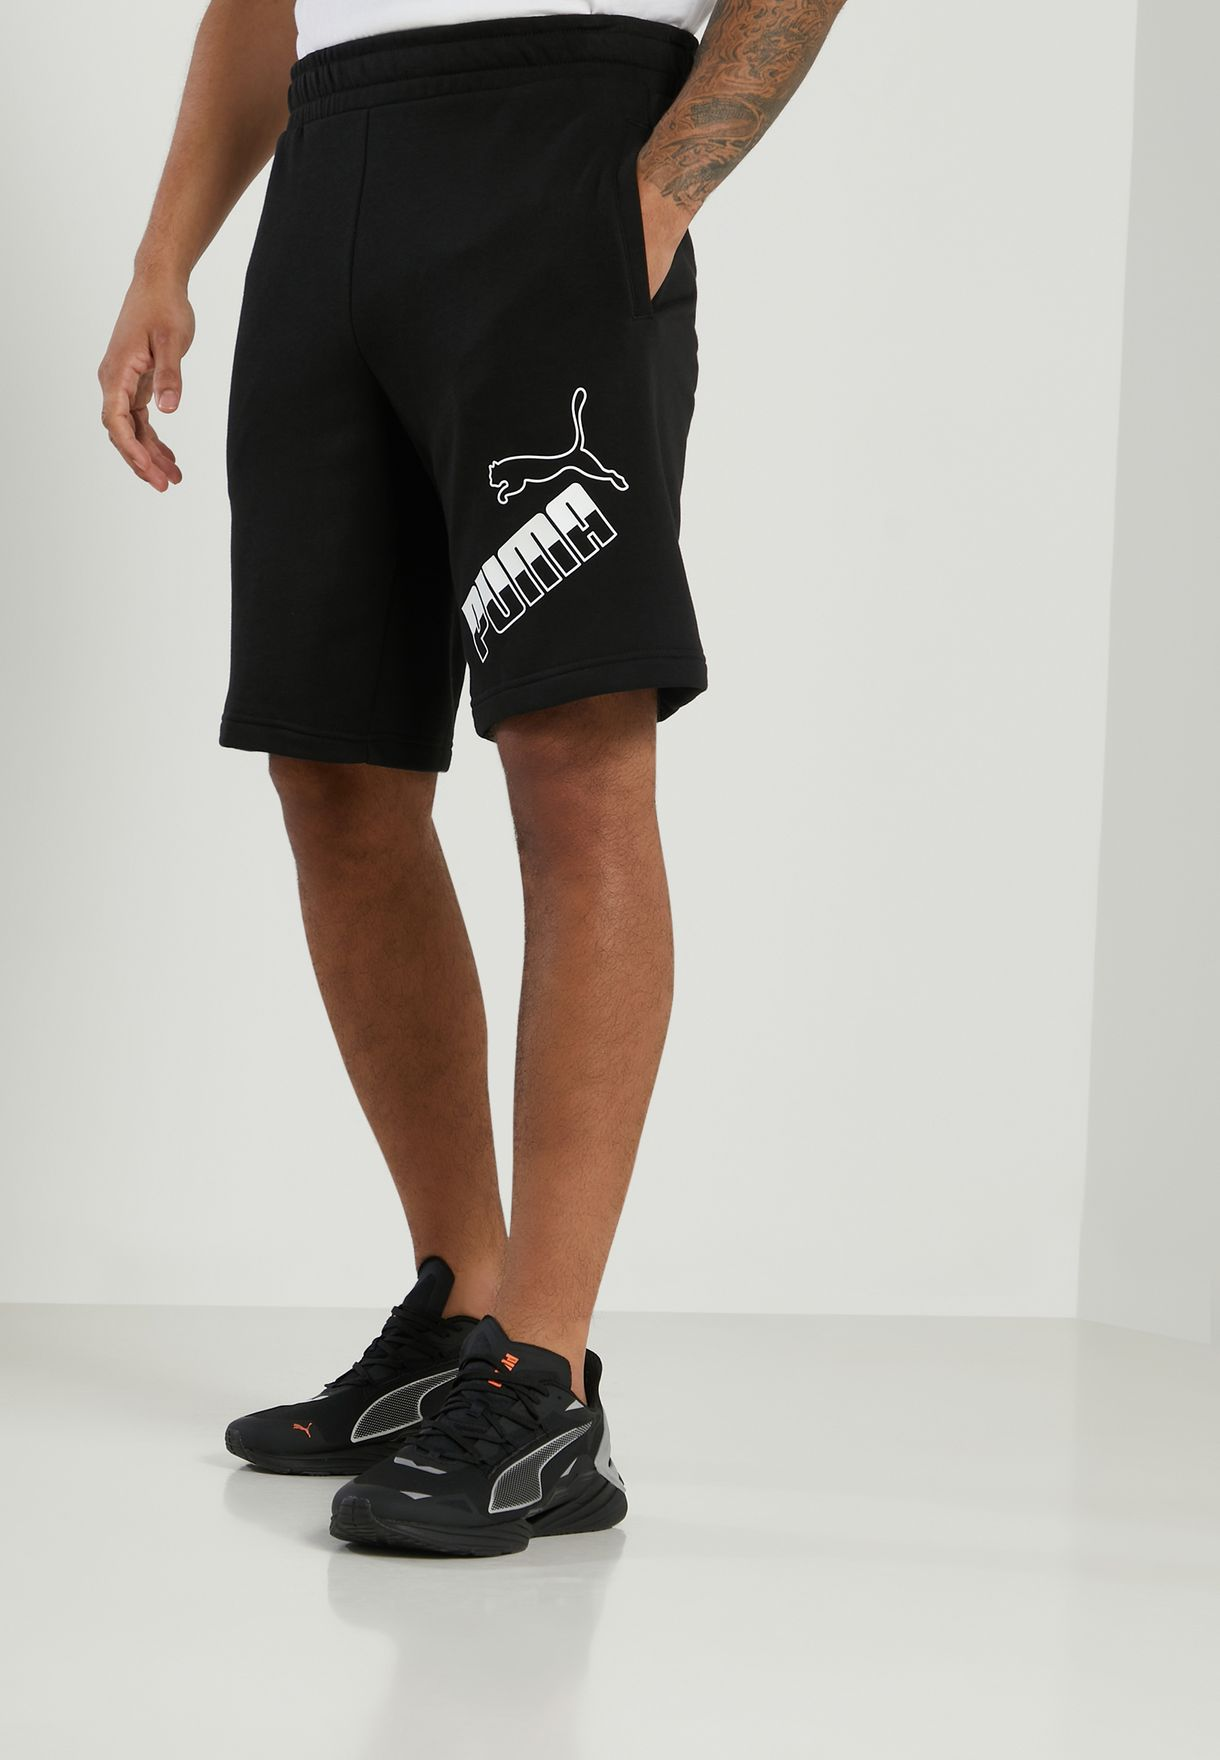 BIG LOGO men shorts